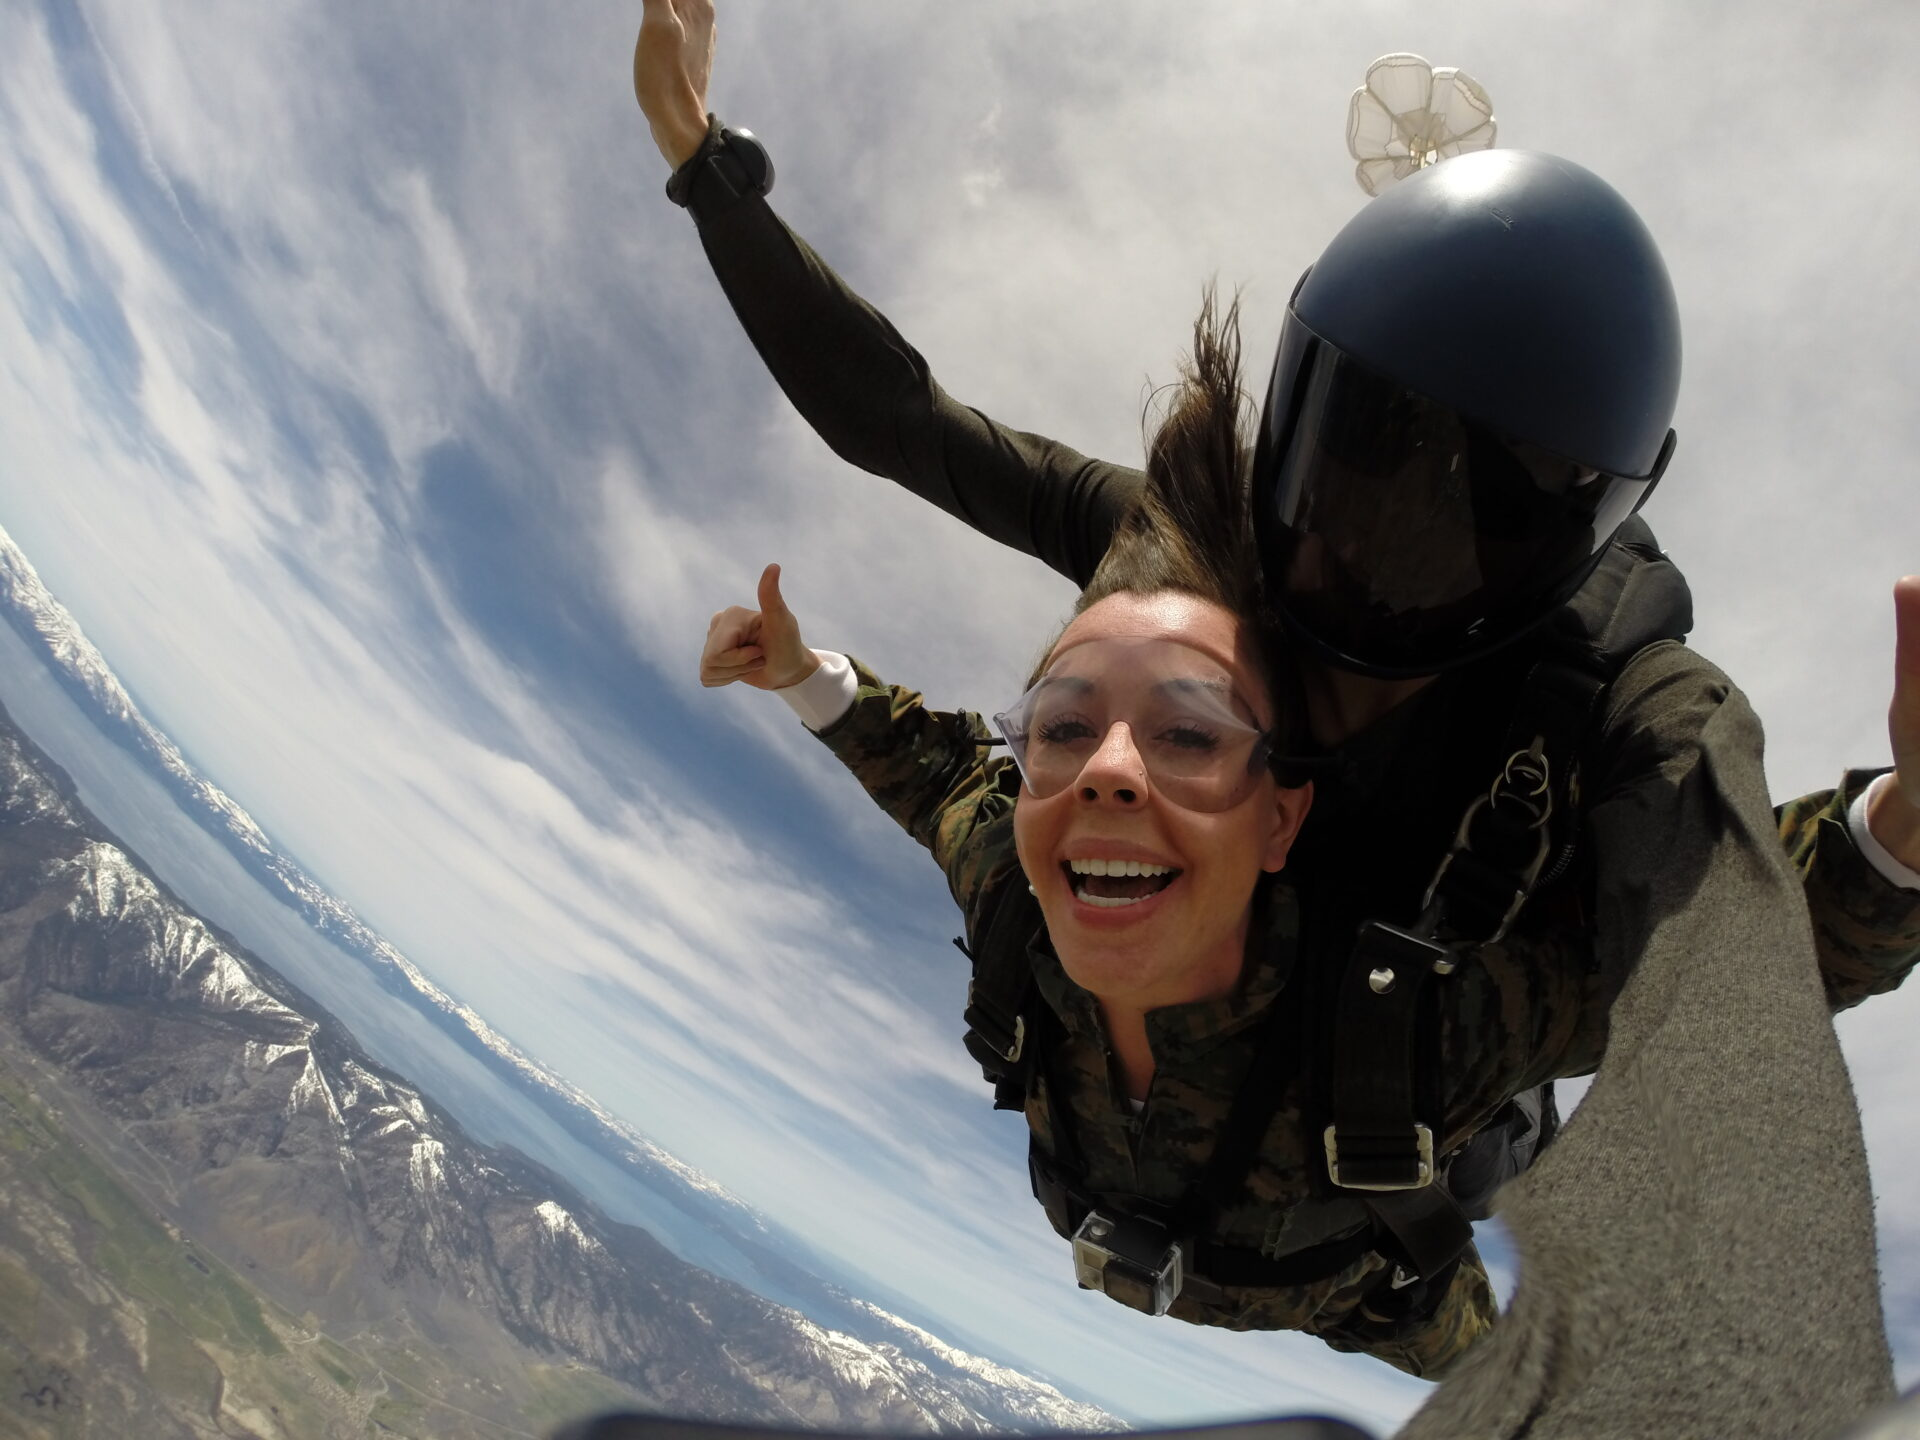 Skydiving in South Lake Tahoe & Skydiving Center | Skydive